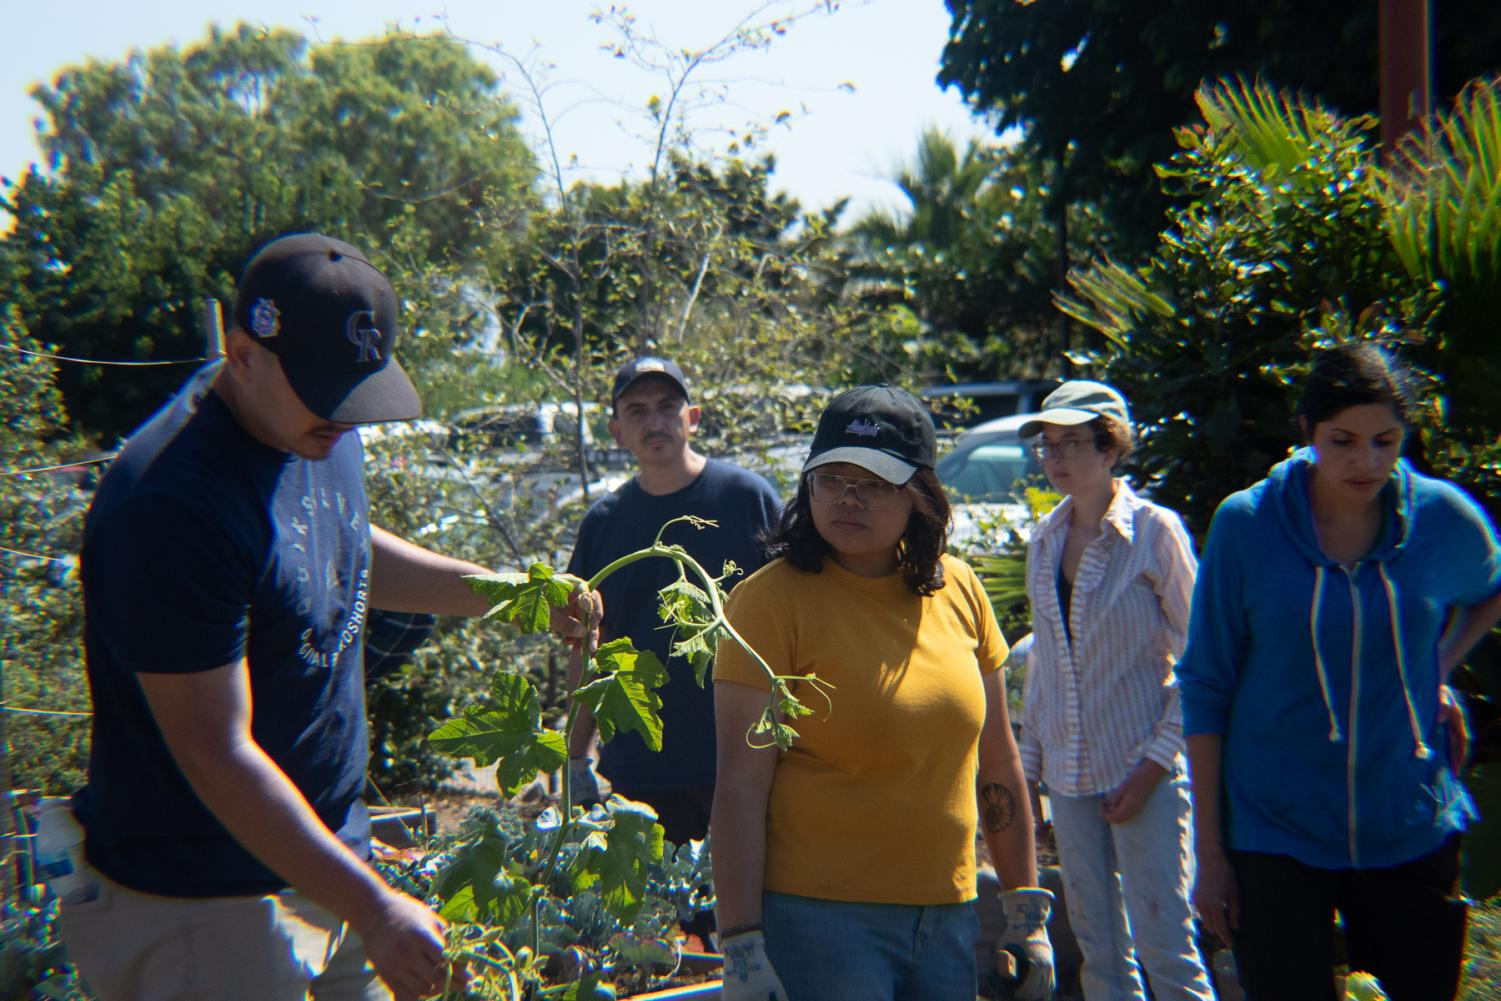 Students of Don Hartley's Small Scale Food Production class gather in the East Campus garden to do some planting on Sept. 17, 2019, at City College in Santa Barbara, Calif.